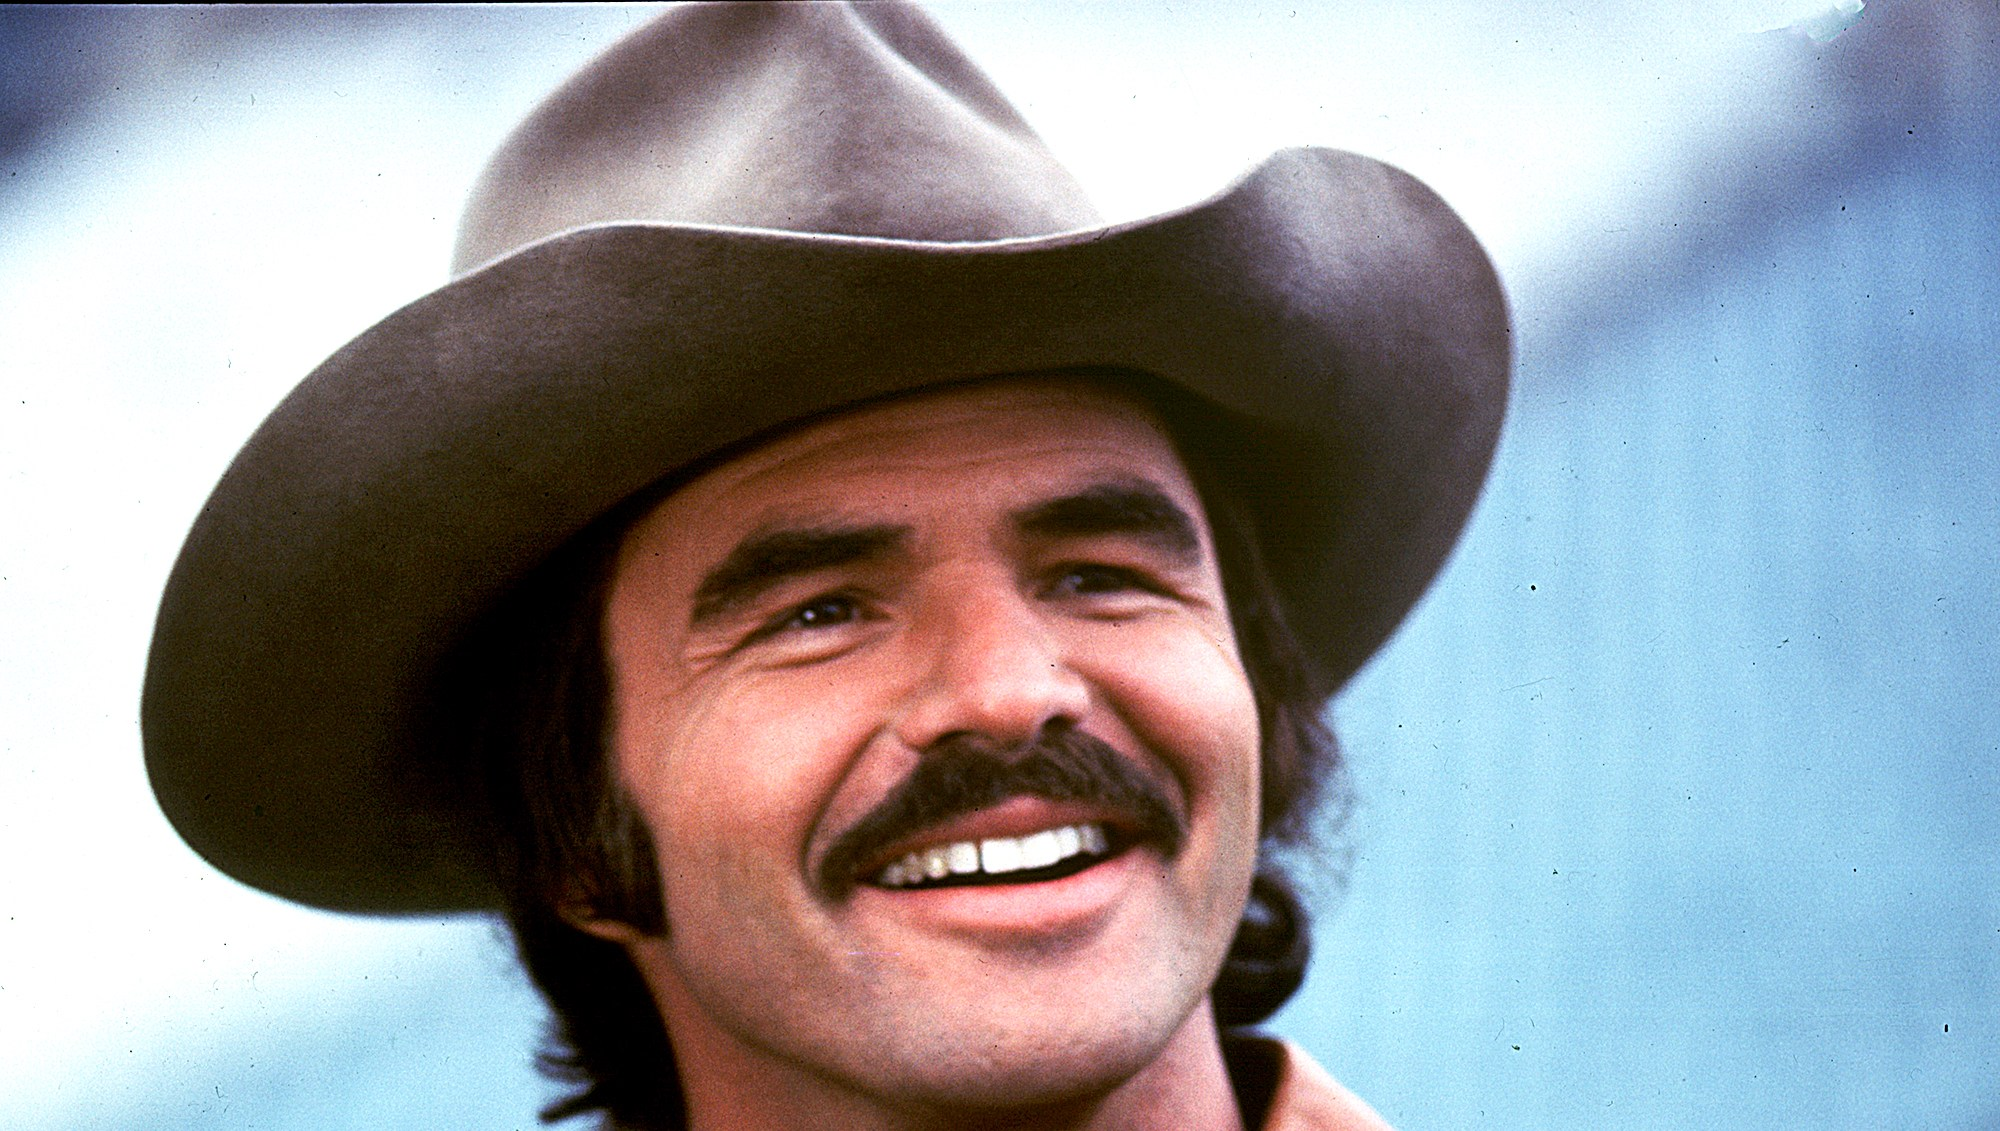 Burt-Reynolds-movie-roles